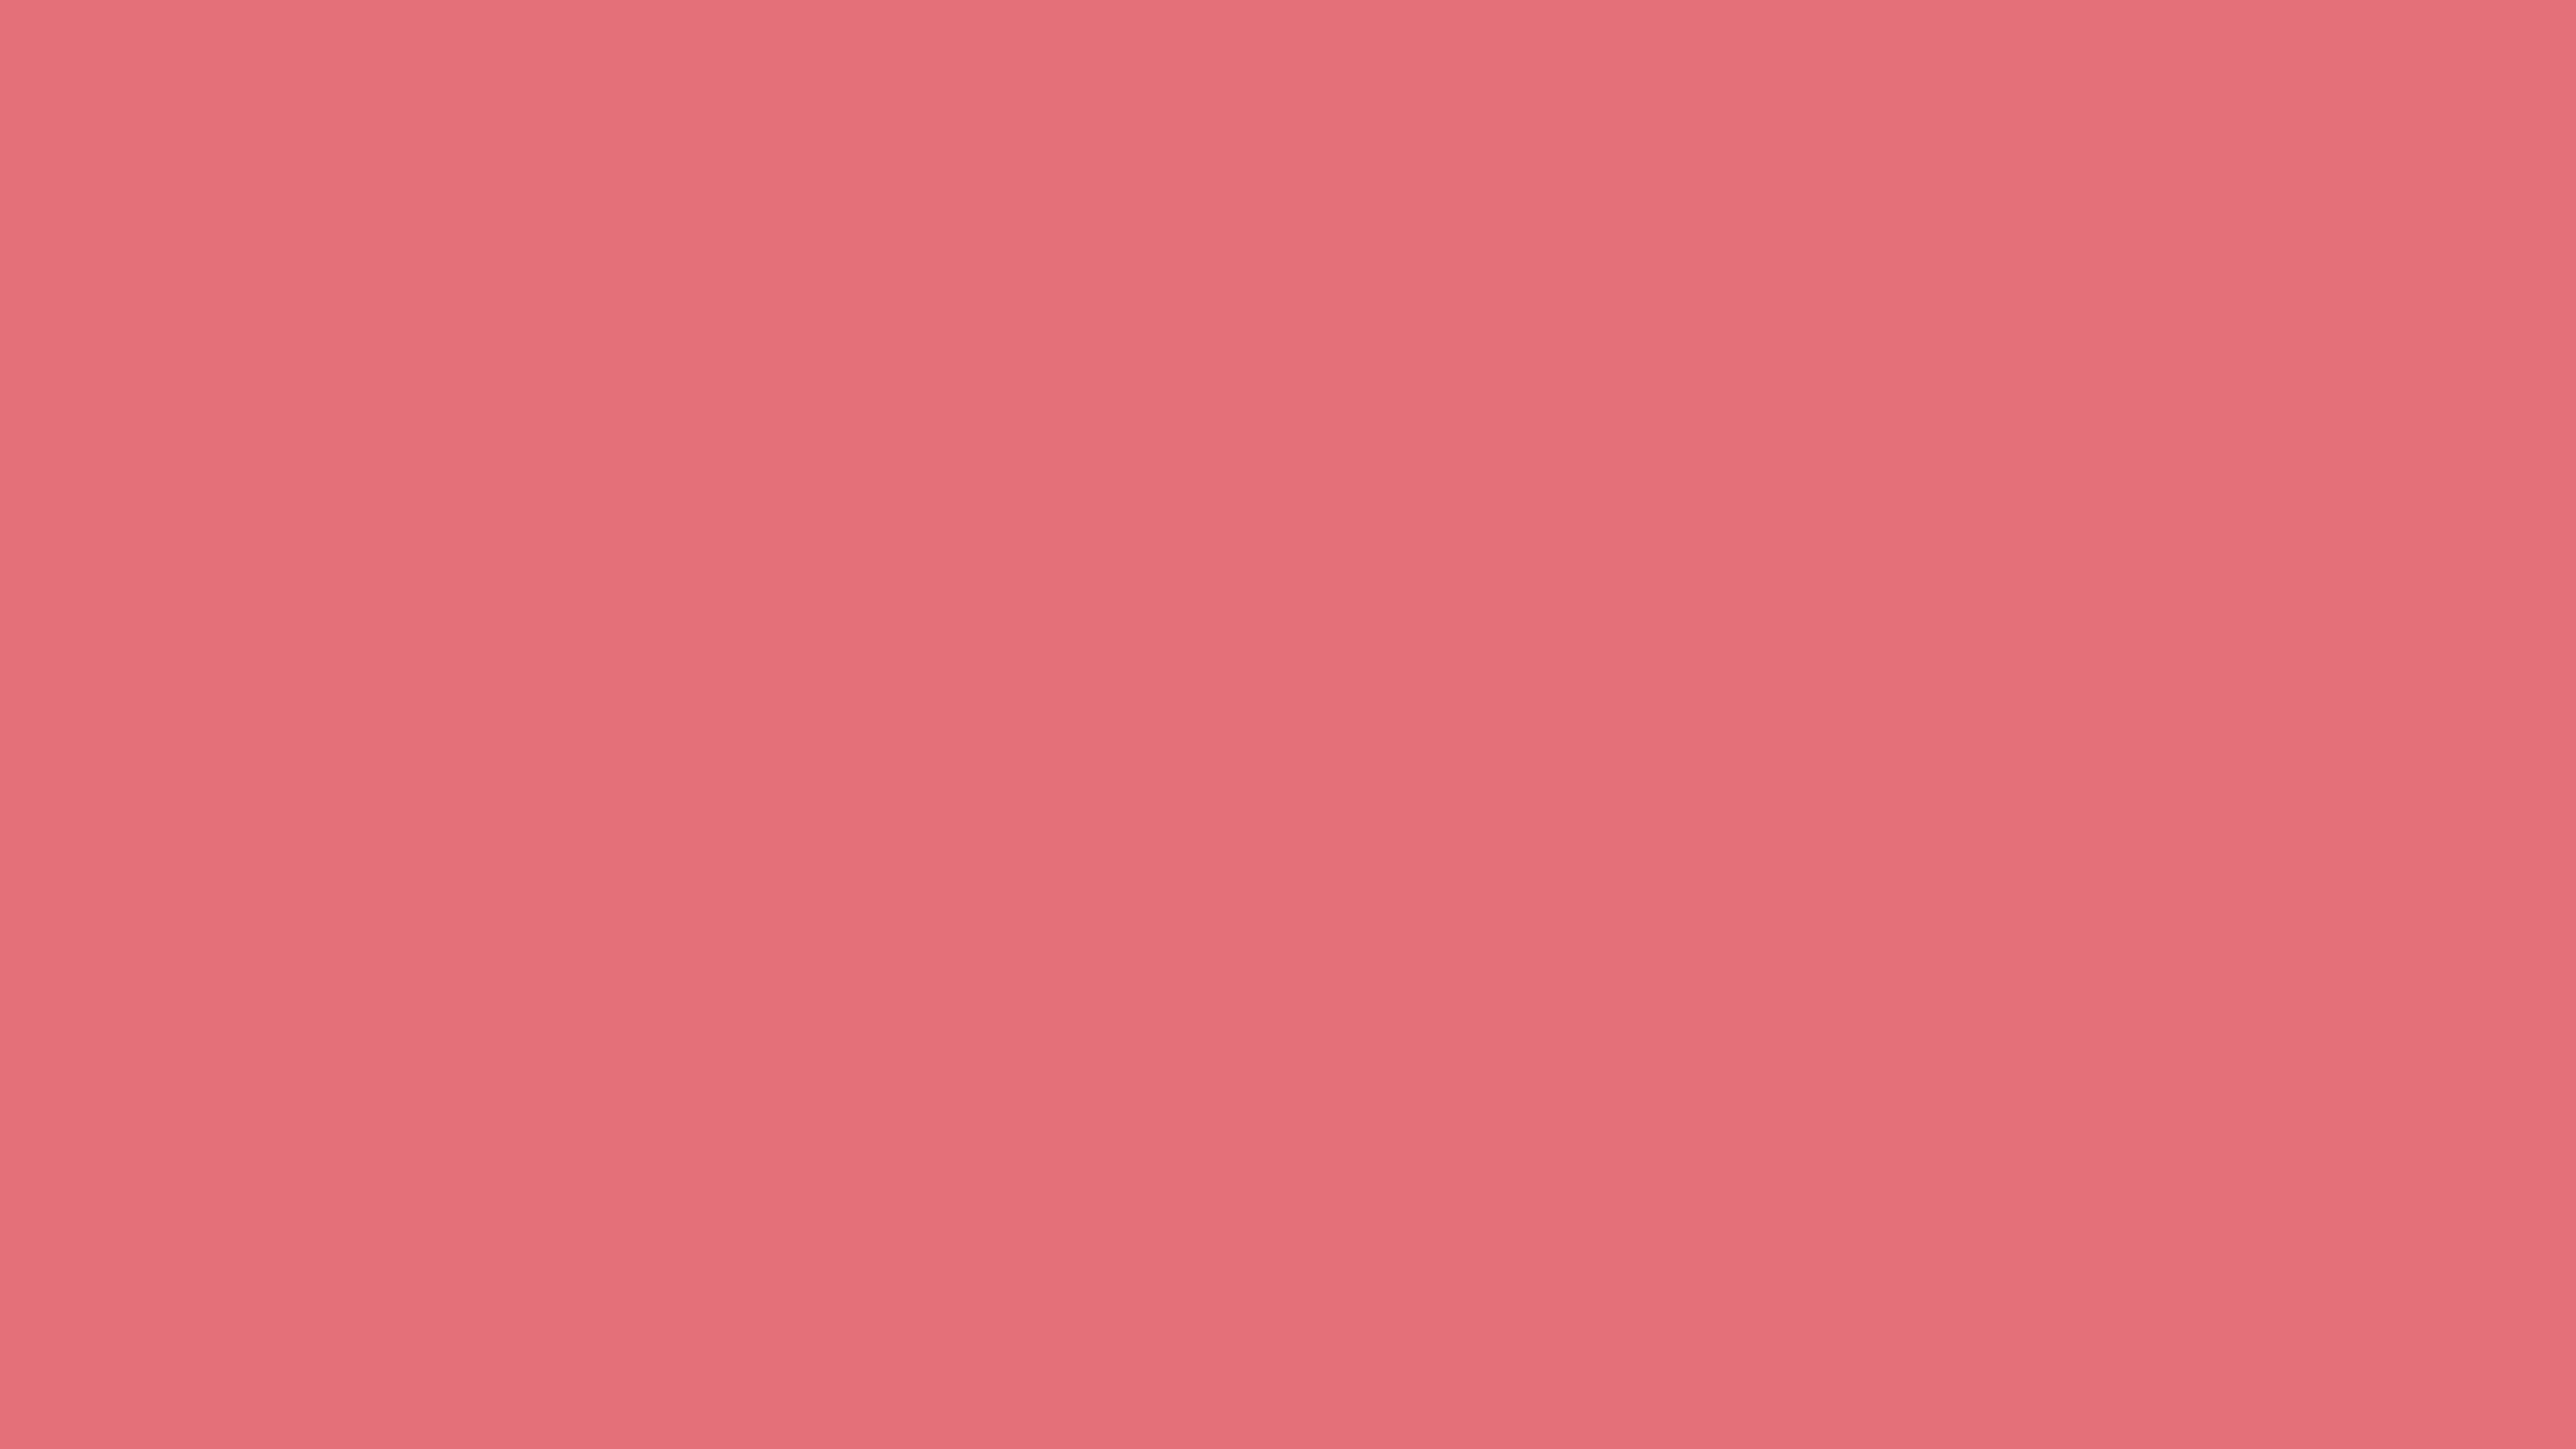 5120x2880 candy pink solid color background